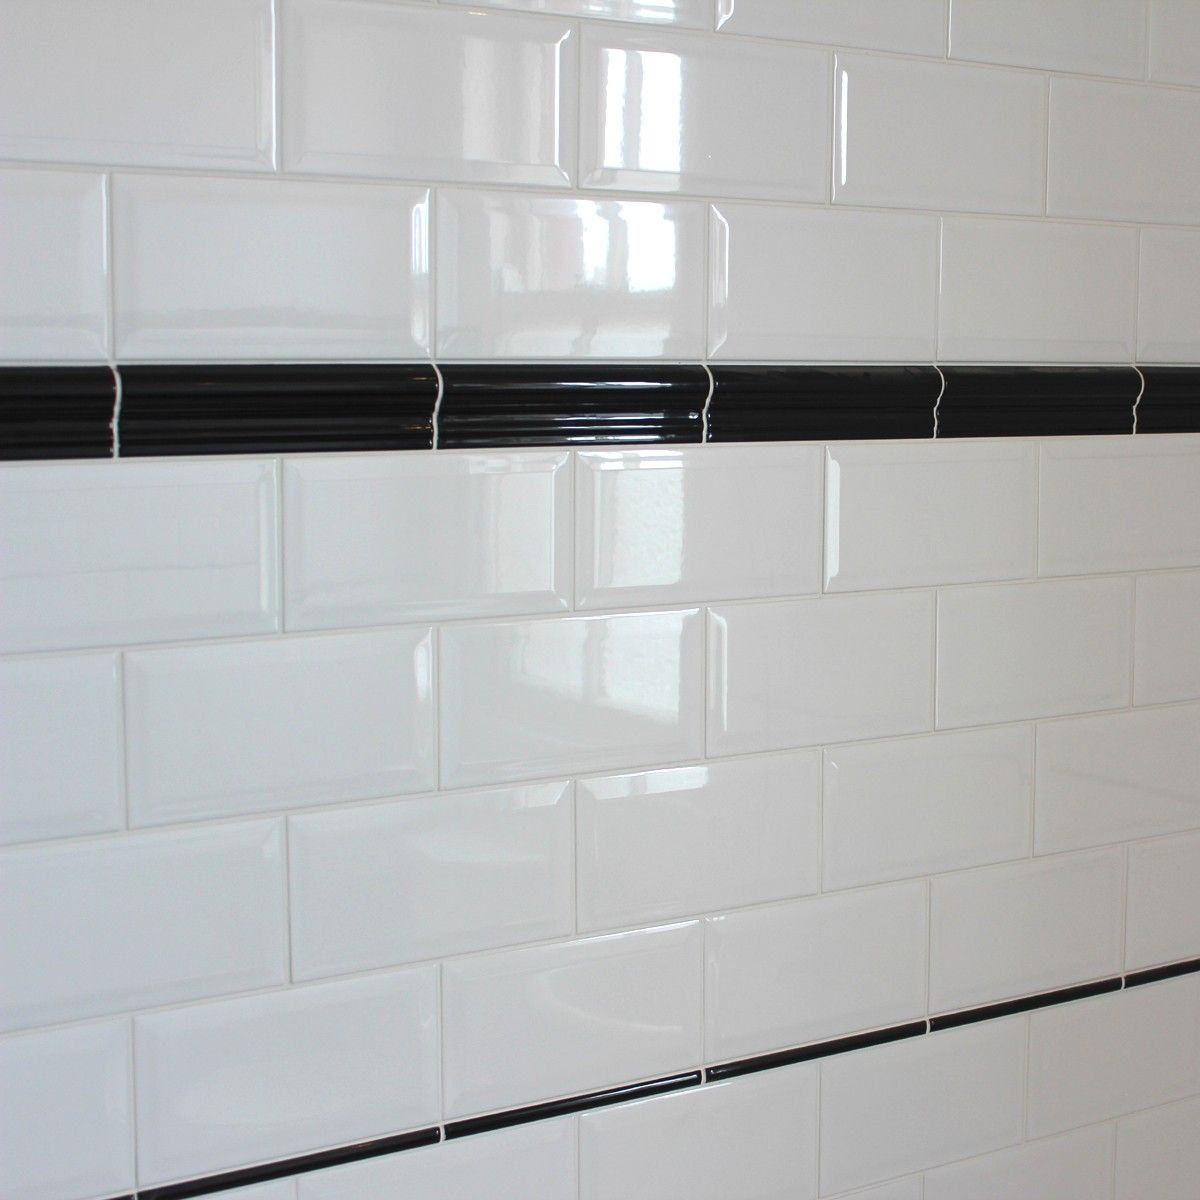 Black and white bathroom wall tiles - Bevelled Edge Ceramic Wall Tile Gloss White Finish In A Solid Colour Ideal For